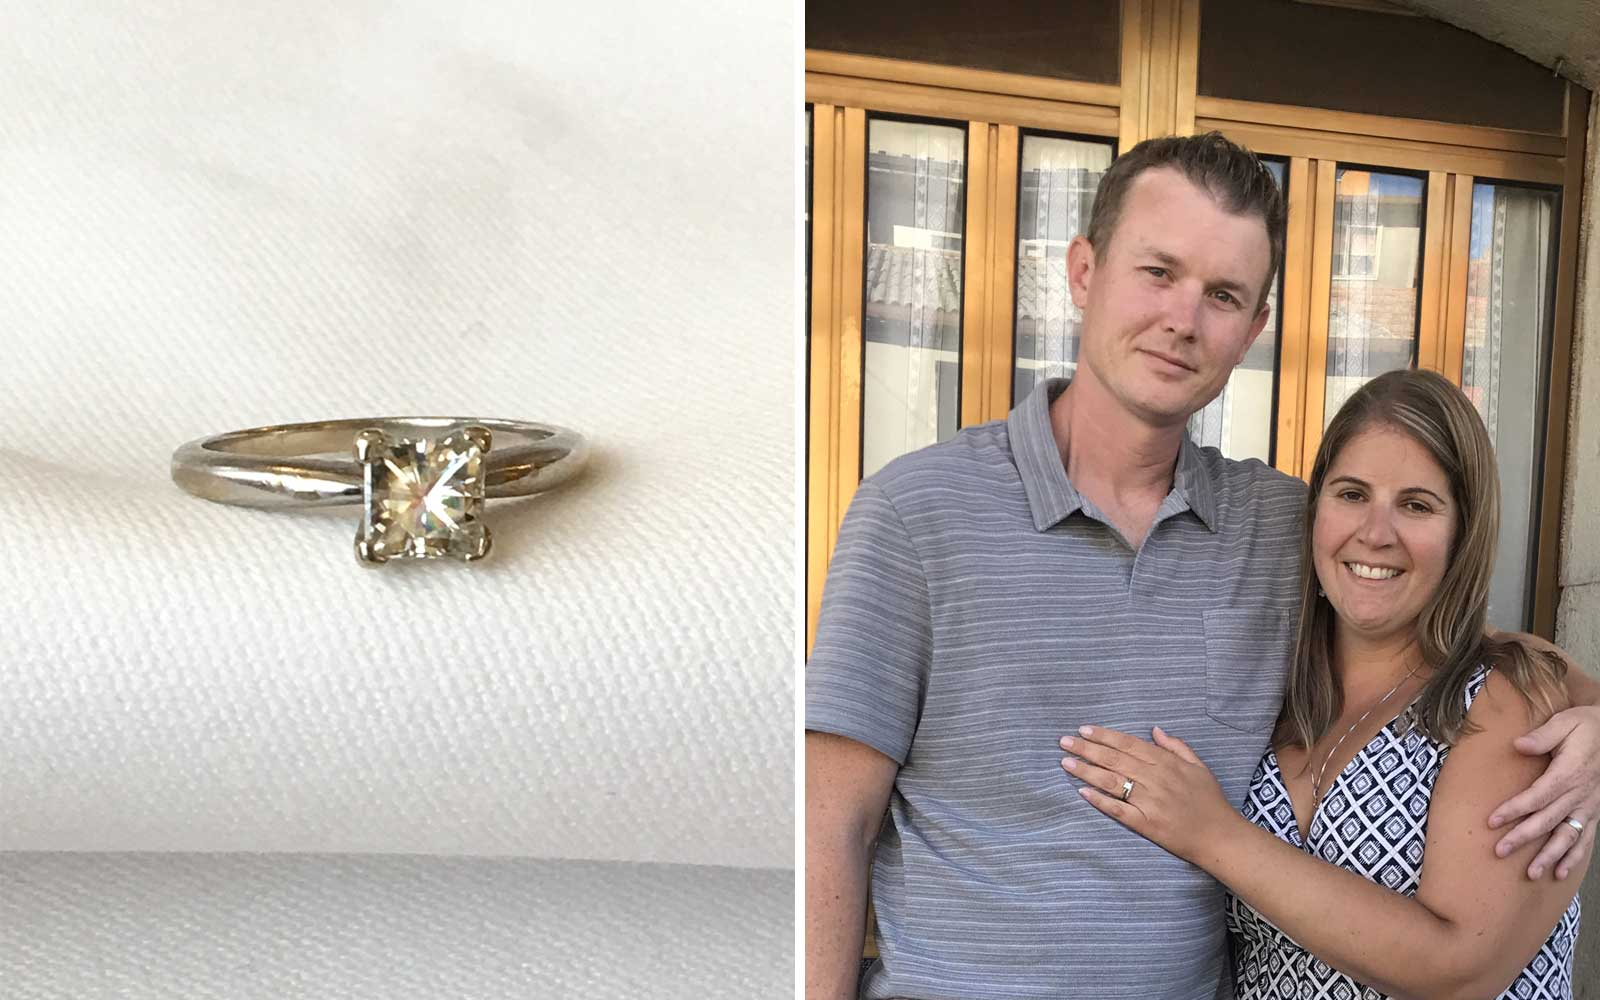 Justin Mussel Engagement Ring Found in Italy